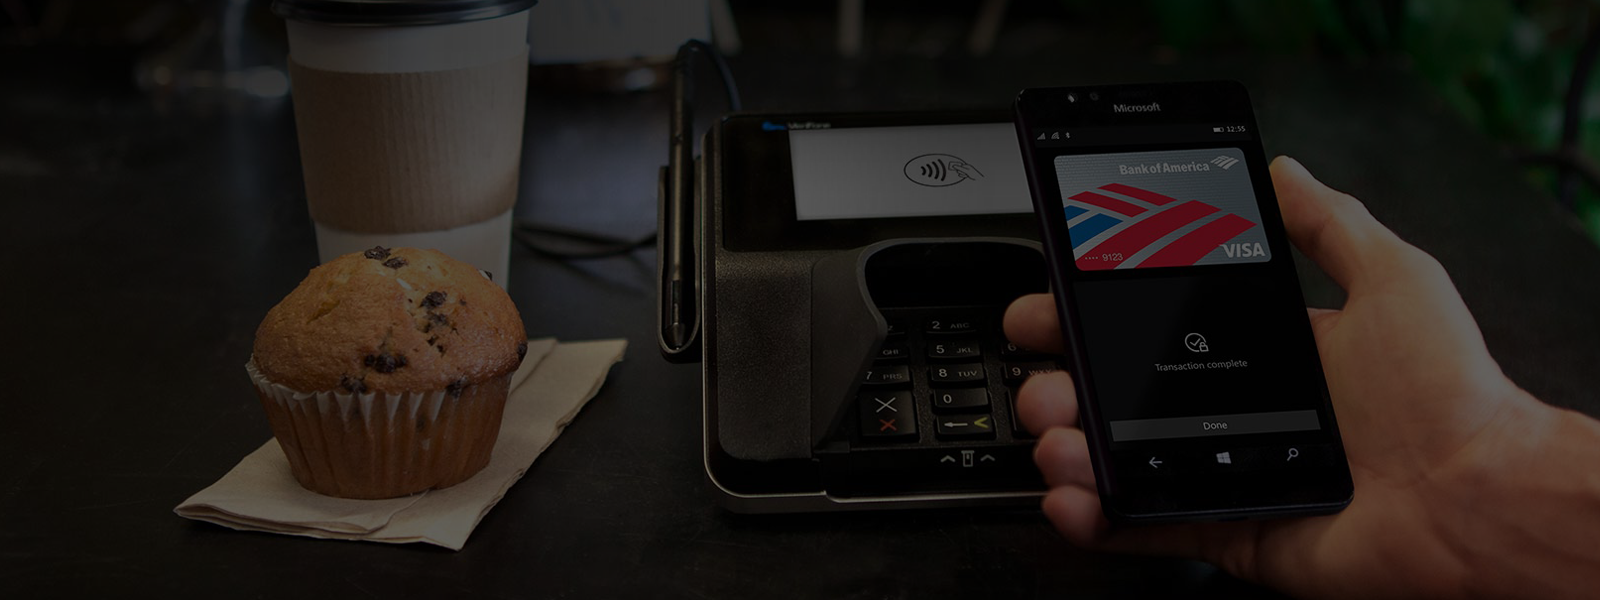 Use Microsoft Wallet on a Windows 10 phone to tap and pay